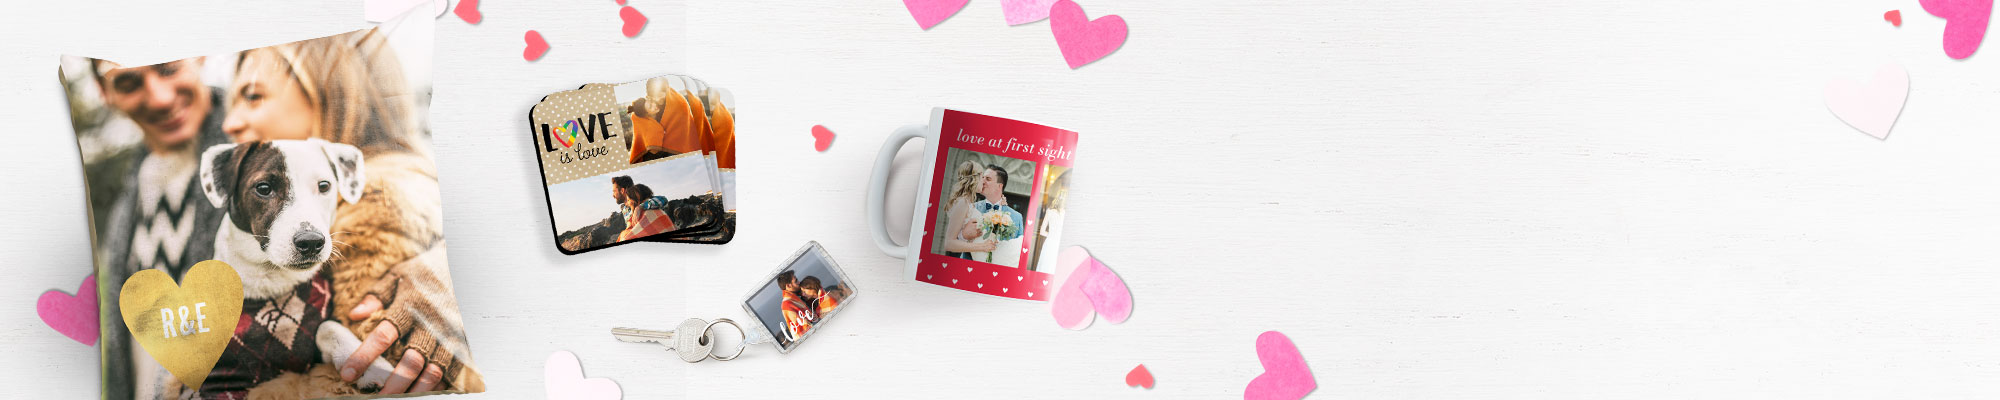 Photo Gifts : Find all the perfect spaces to show off your favourite faces, hobbies, and adventures.